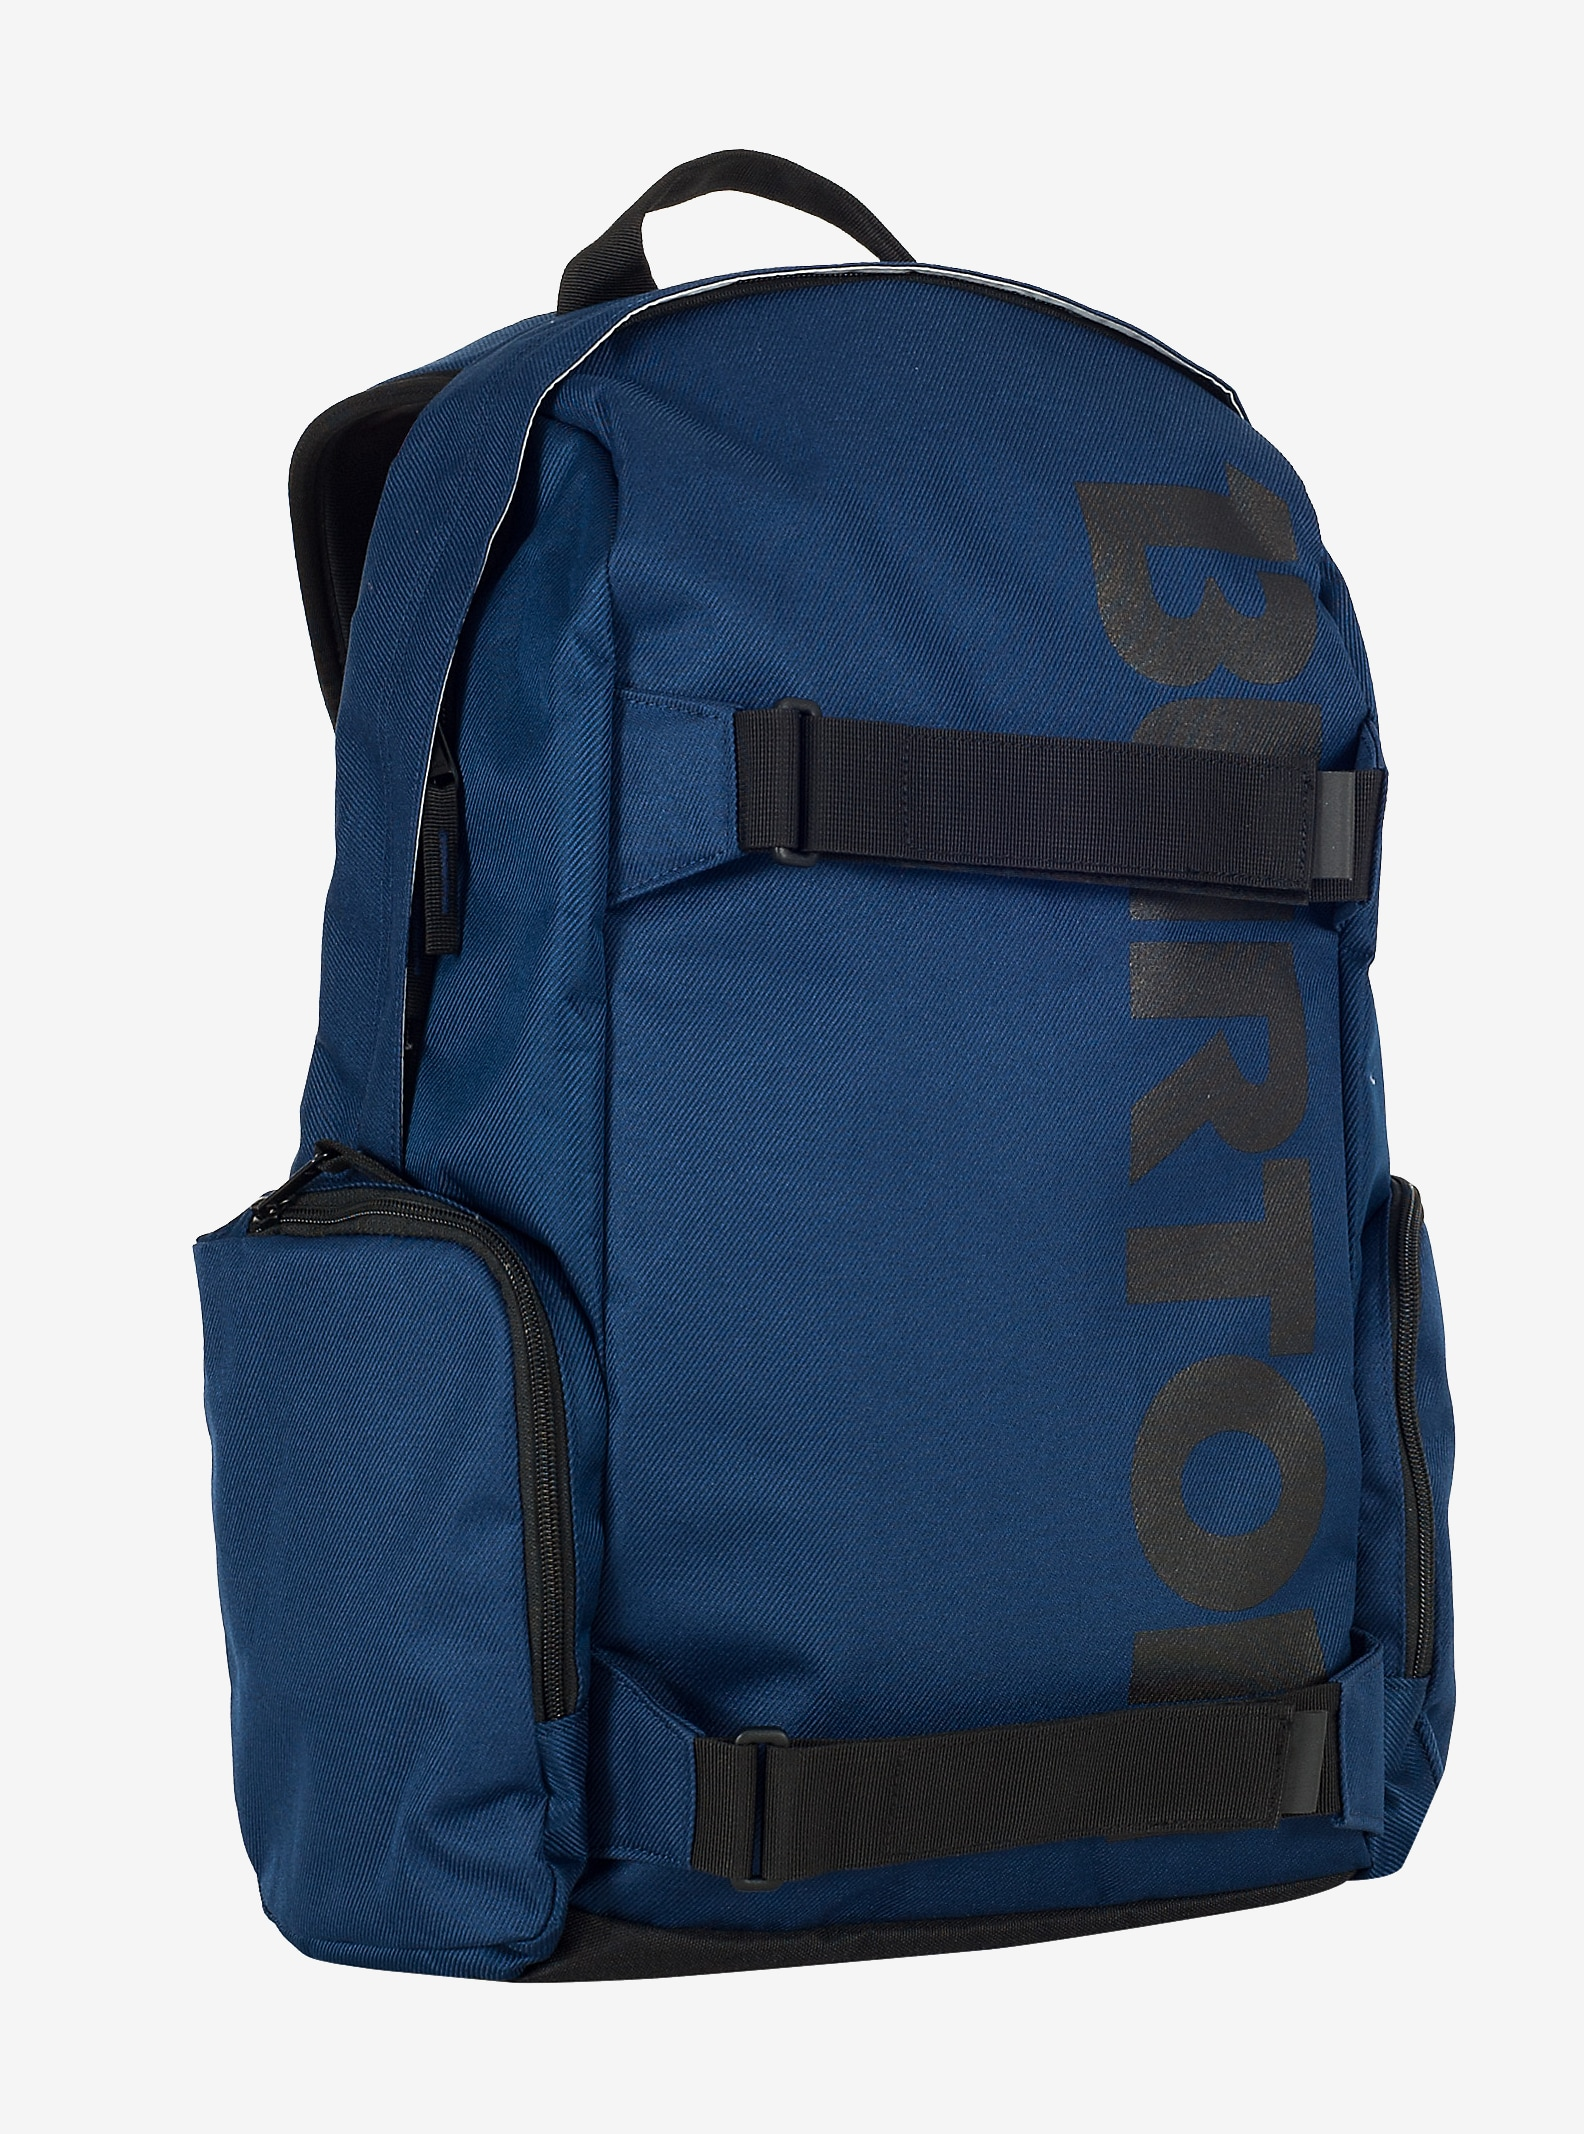 Burton Emphasis Pack shown in Medieval Blue Twill